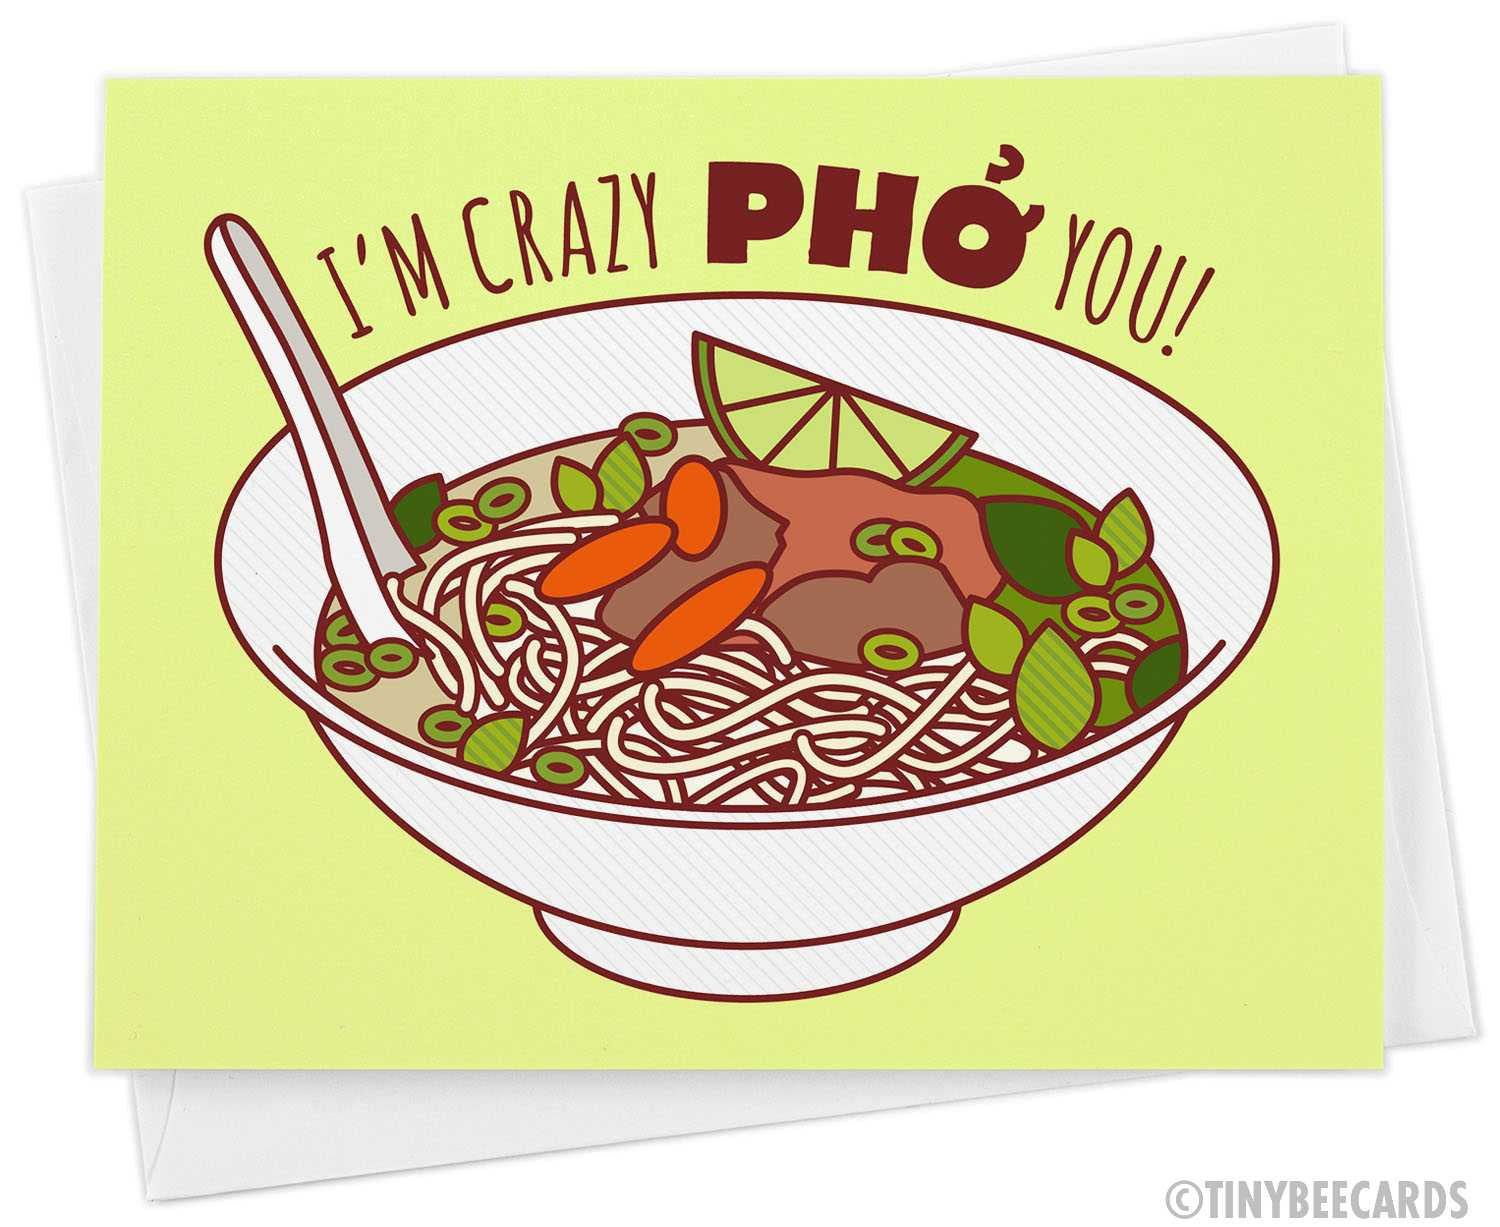 "Funny Anniversary or Love Card ""Crazy Pho You"""